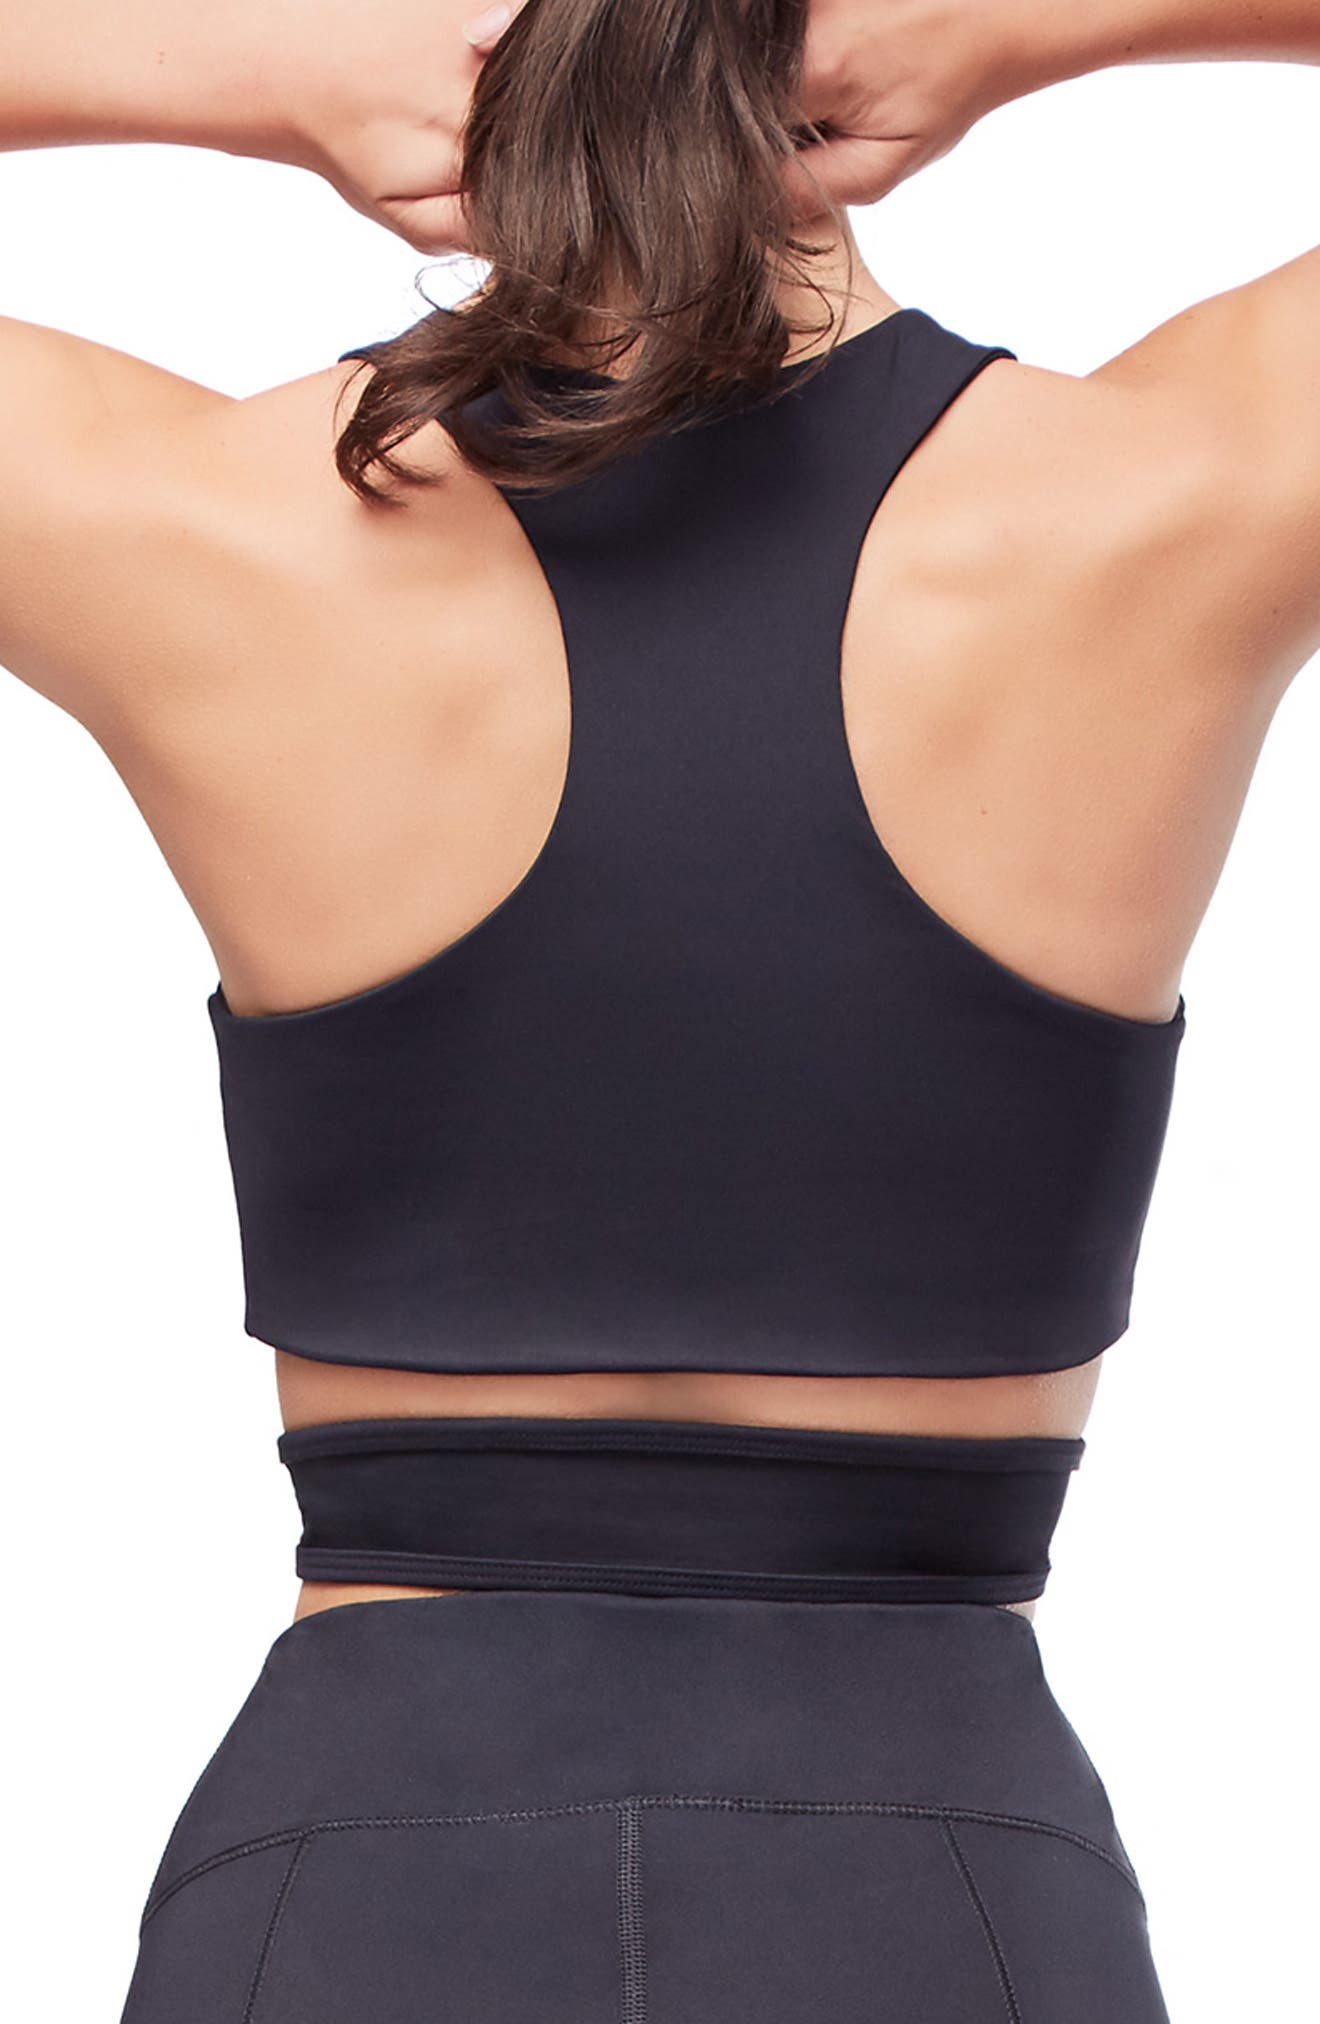 Lace Sports Bra,                             Alternate thumbnail 3, color,                             BLACK001